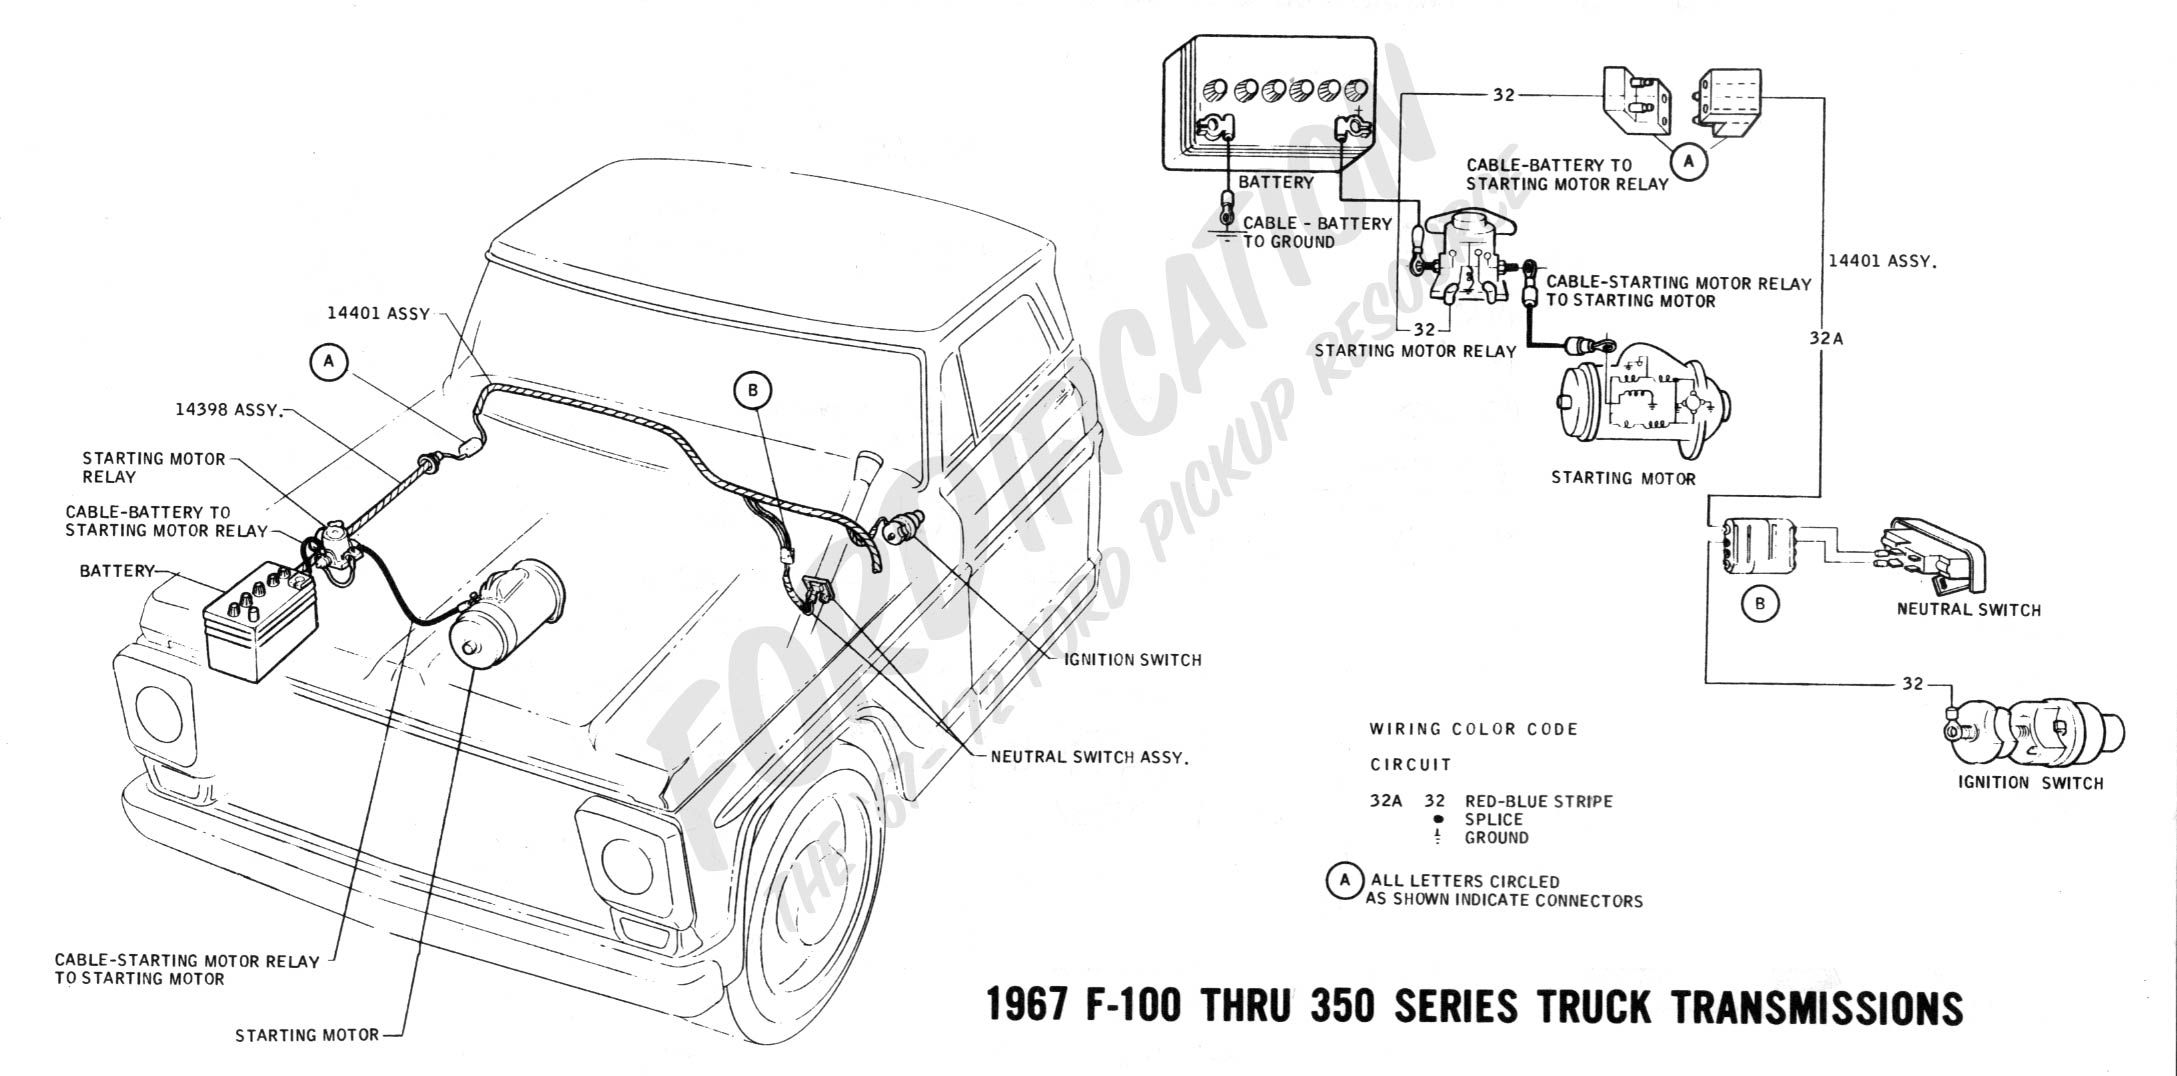 Wiring Trucktranny With Images